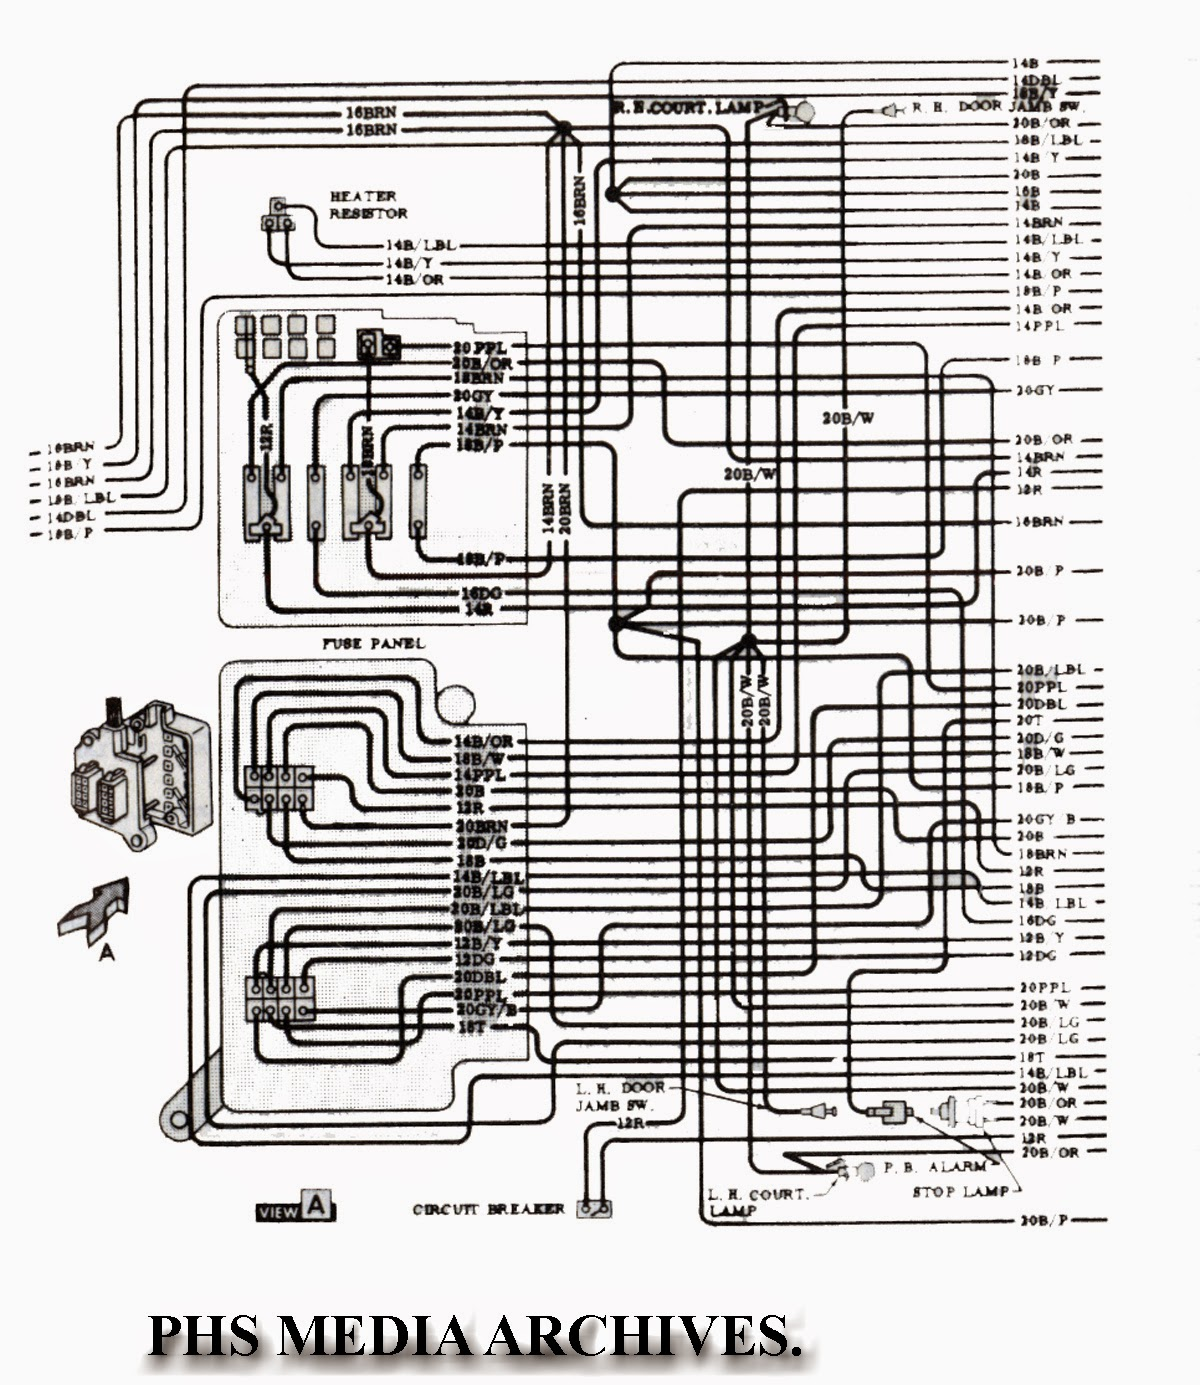 65 corvette wiring diagram   26 wiring diagram images